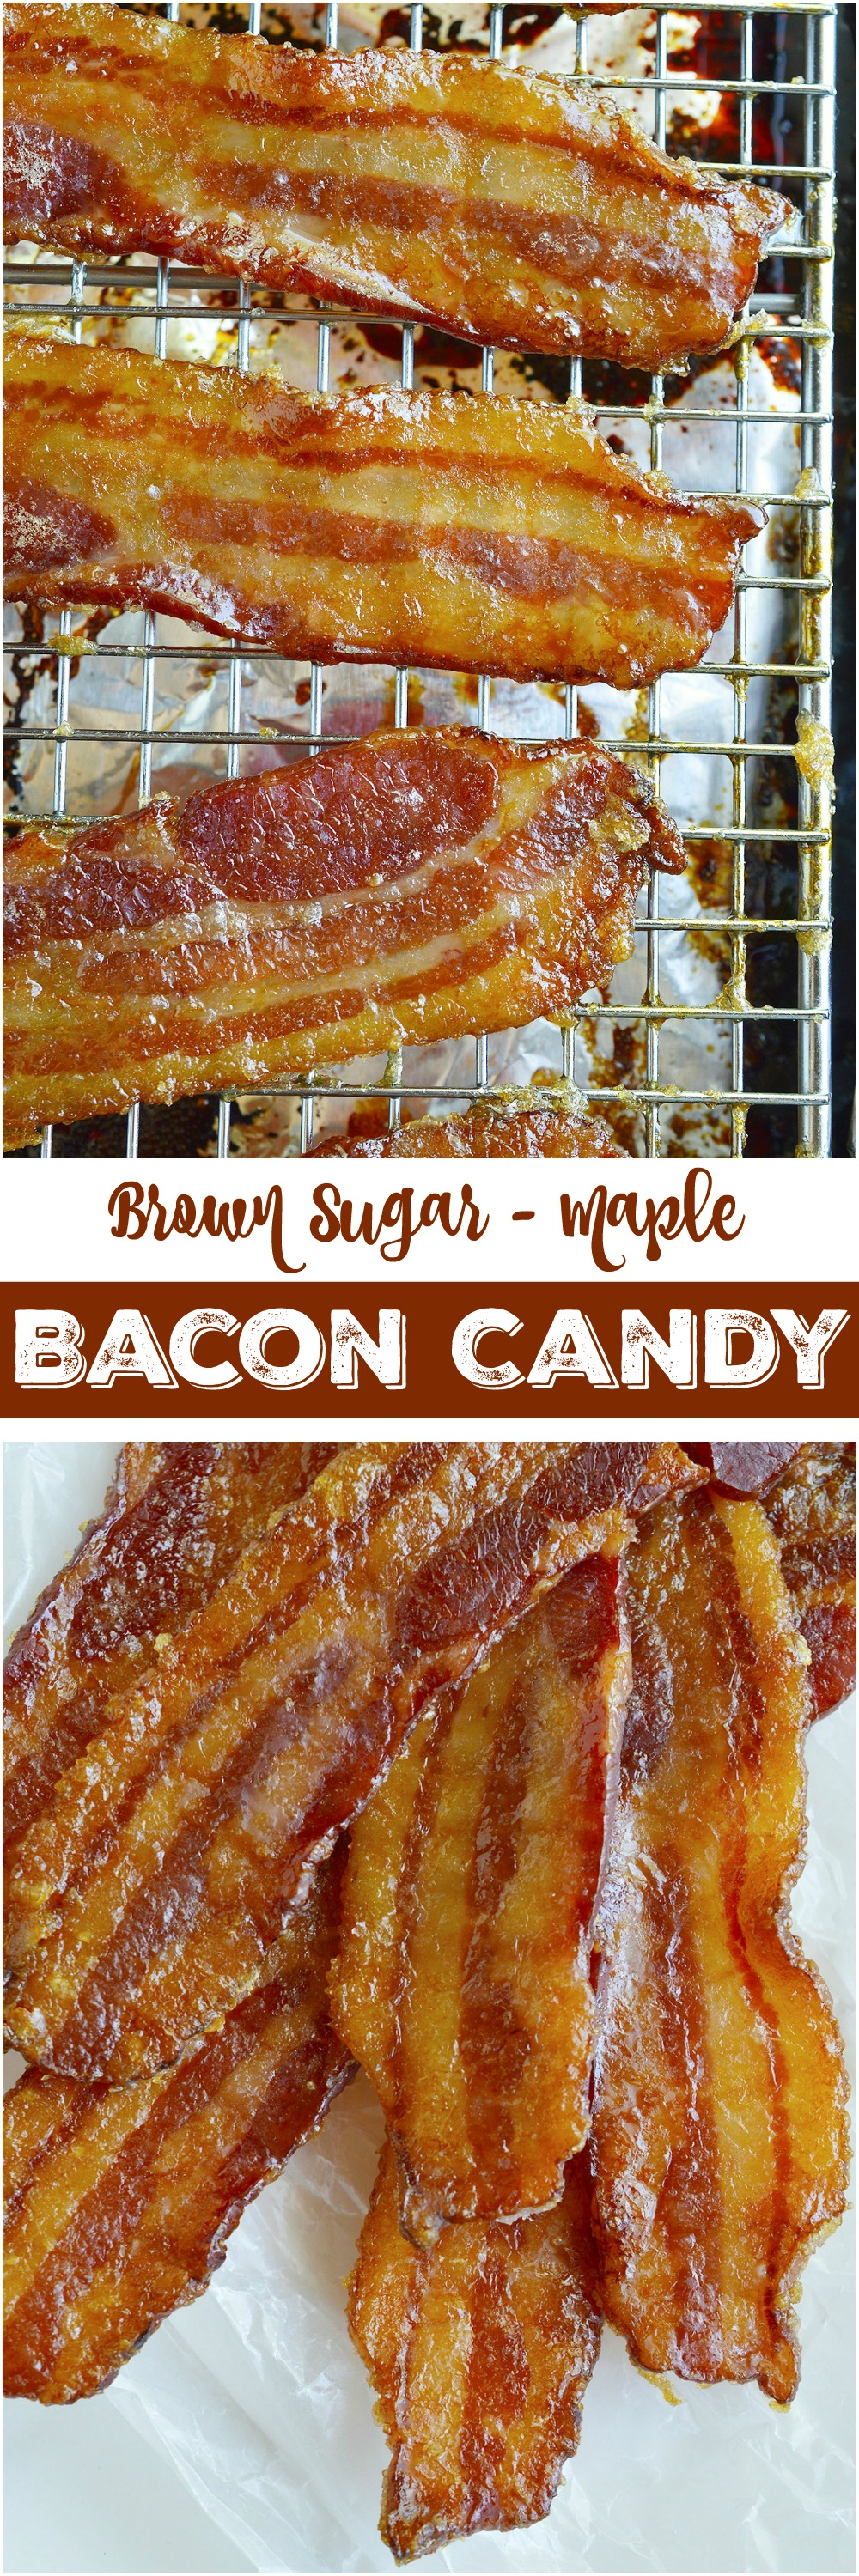 Brown Sugar Maple Bacon Wonkywonderful